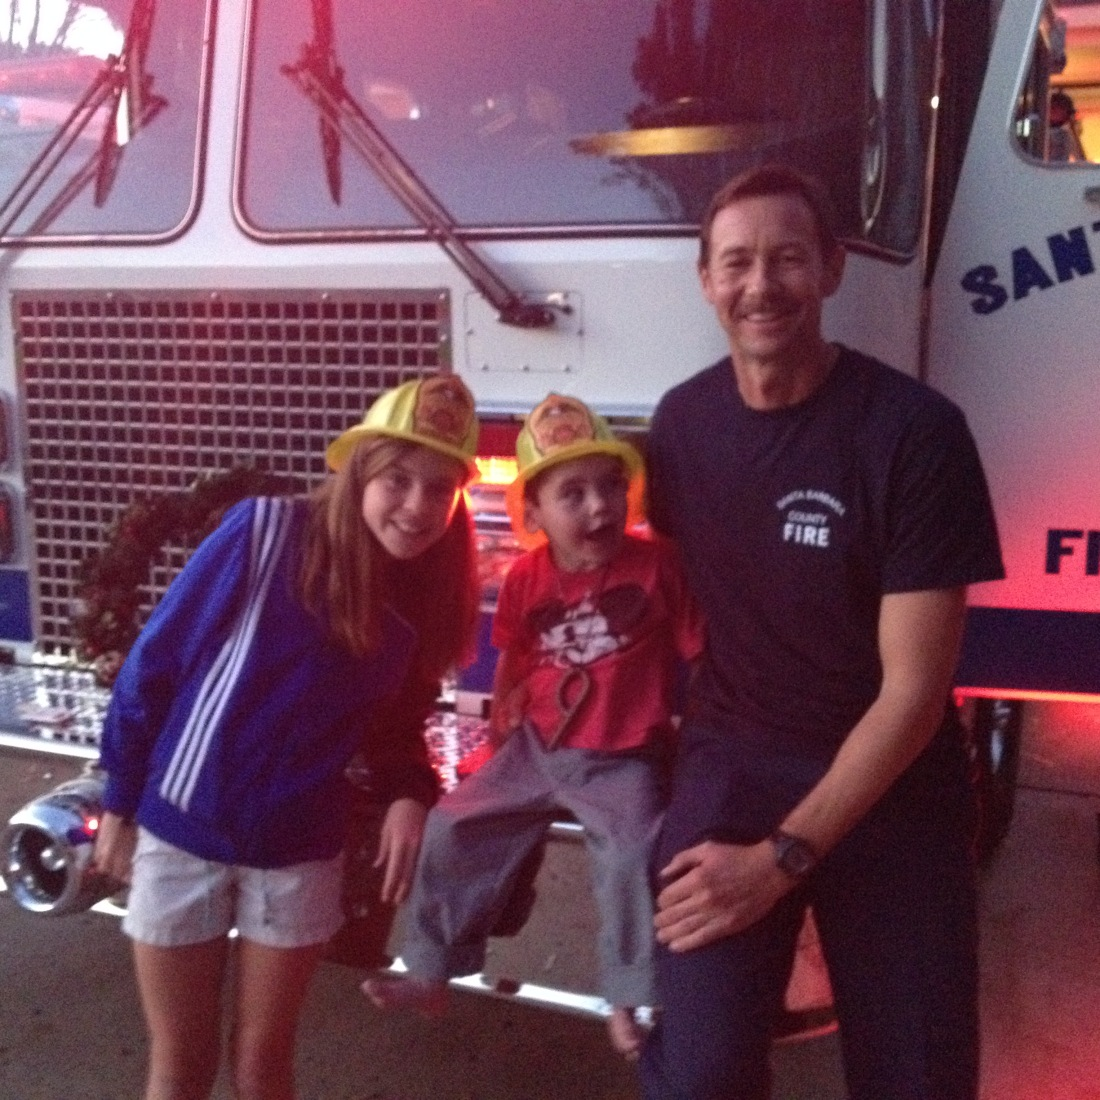 Thanks Fireman Matt!